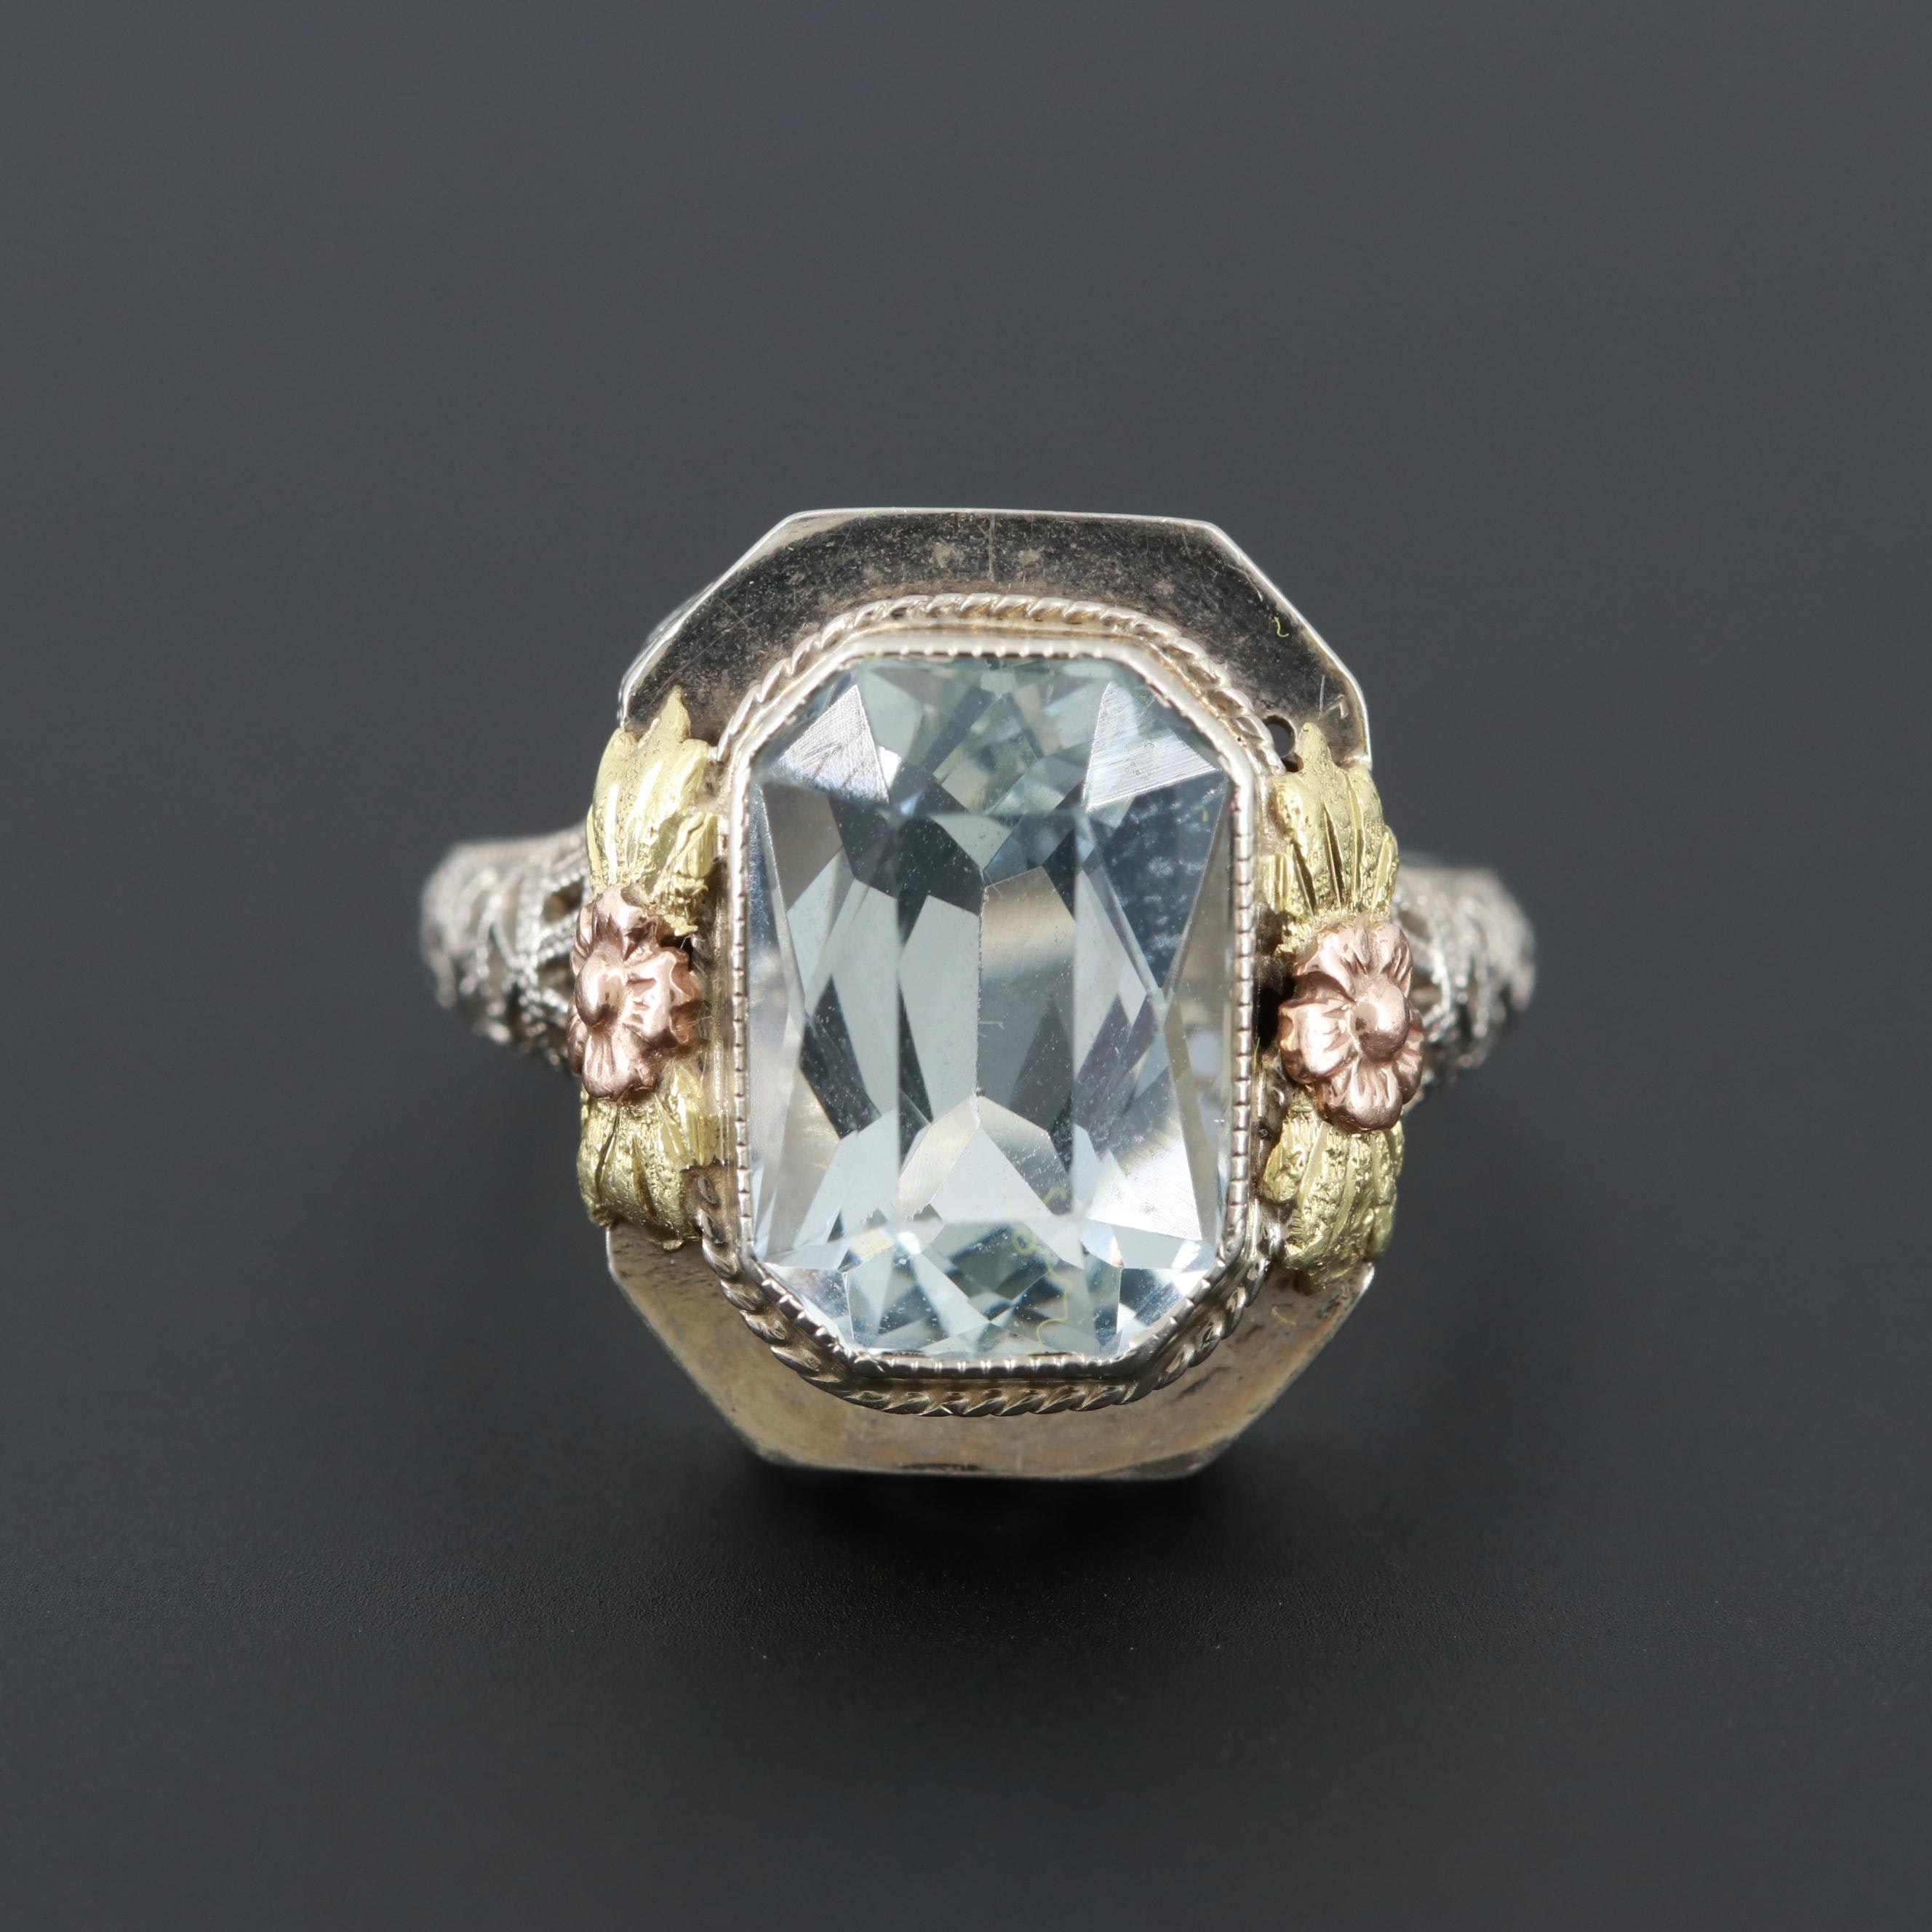 Art Deco 14K White Gold Aquamarine Ring with Rose and Yellow Gold Accents